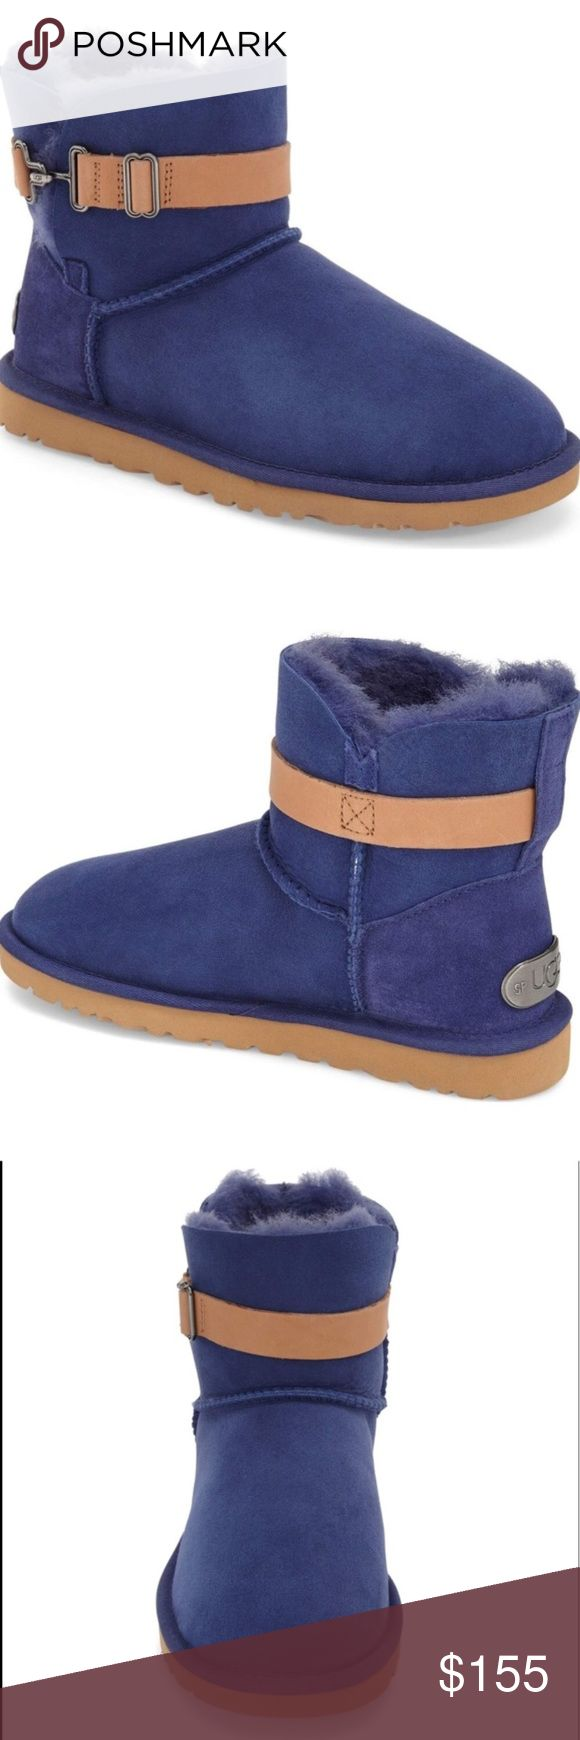 """UGG Boots Like new.  An adjustable belt bridges the split shaft of a cozy, comfortable boot cut from water-resistant suede. The plush, warm lining is made from genuine shearling and UGGpure™, a textile made entirely from wool but crafted to feel and wear like genuine shearling. 1"""" platform (size 9). 5 1/2"""" boot shaft. Slip-on style with adjustable strap. Leather upper/UGGpure wool and genuine shearling lining/EVA sole.  One shoe was tried on.  Take look at Bottom sole.  Almost like new. UGG…"""